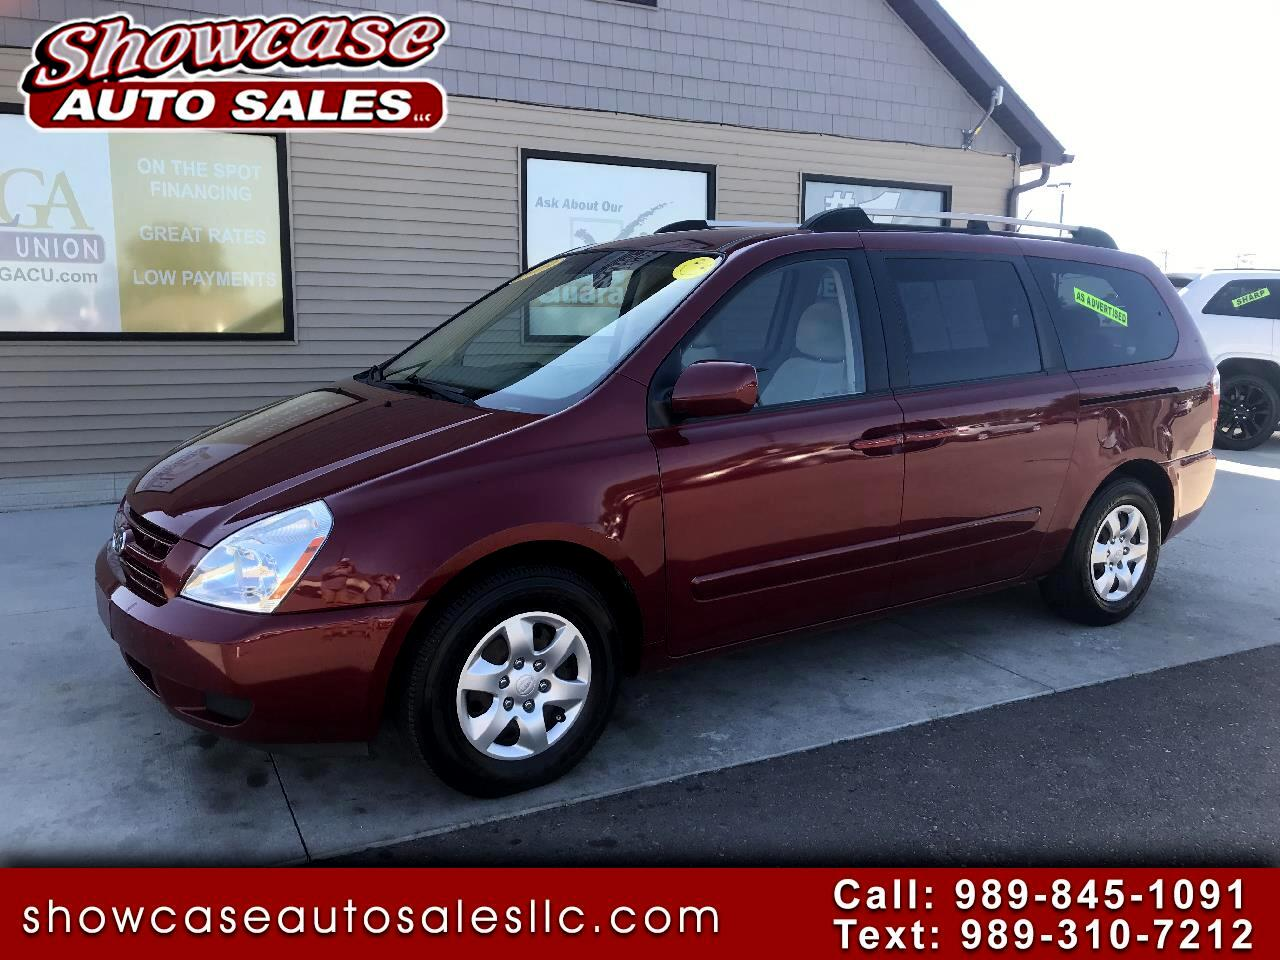 KIA Sedona 2009 for Sale in Chesaning, MI